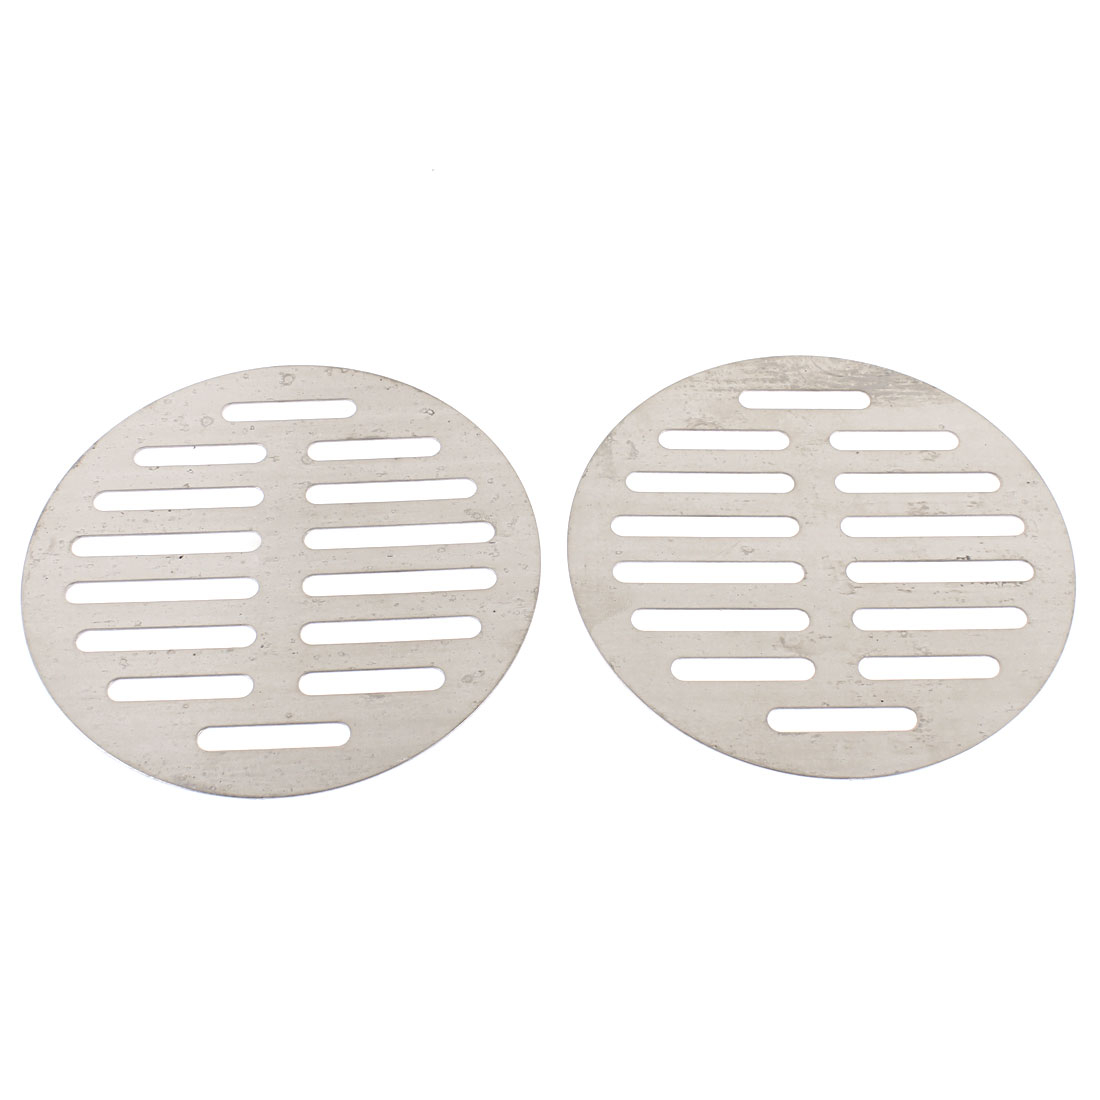 "Kitchen Bathroom Round Floor Drain Drainer Cover 5"" 12.5cm Dia 2Pcs"